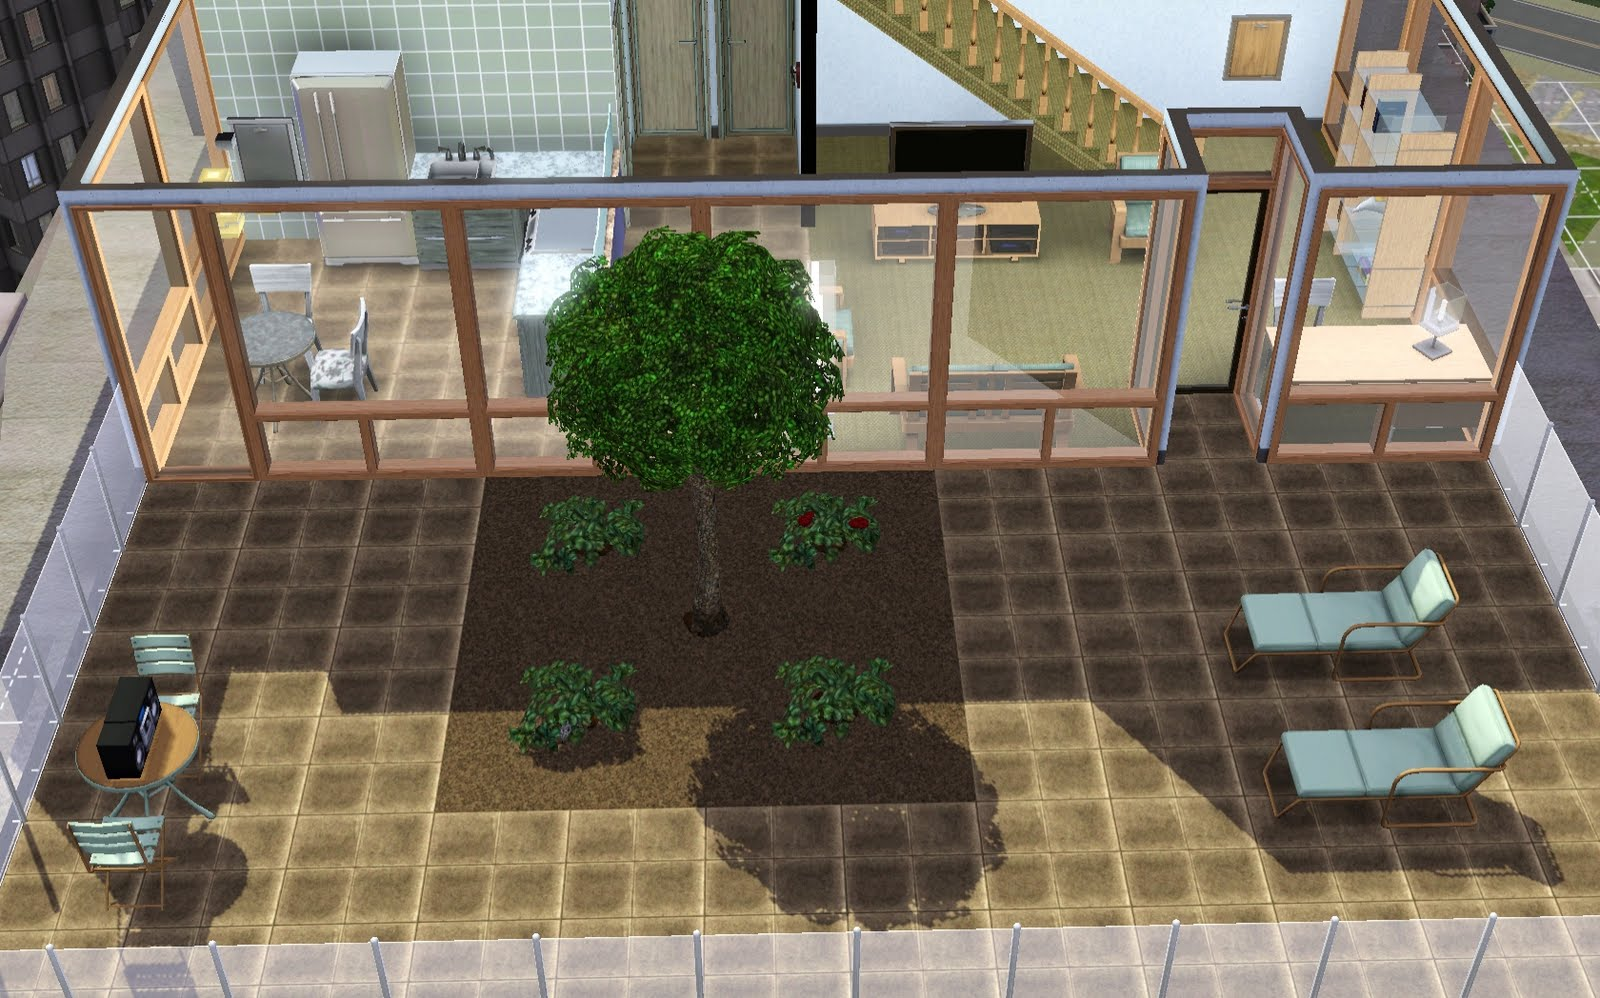 Summer 39 s little sims 3 garden how to build a rooftop or for Sims 4 balcony